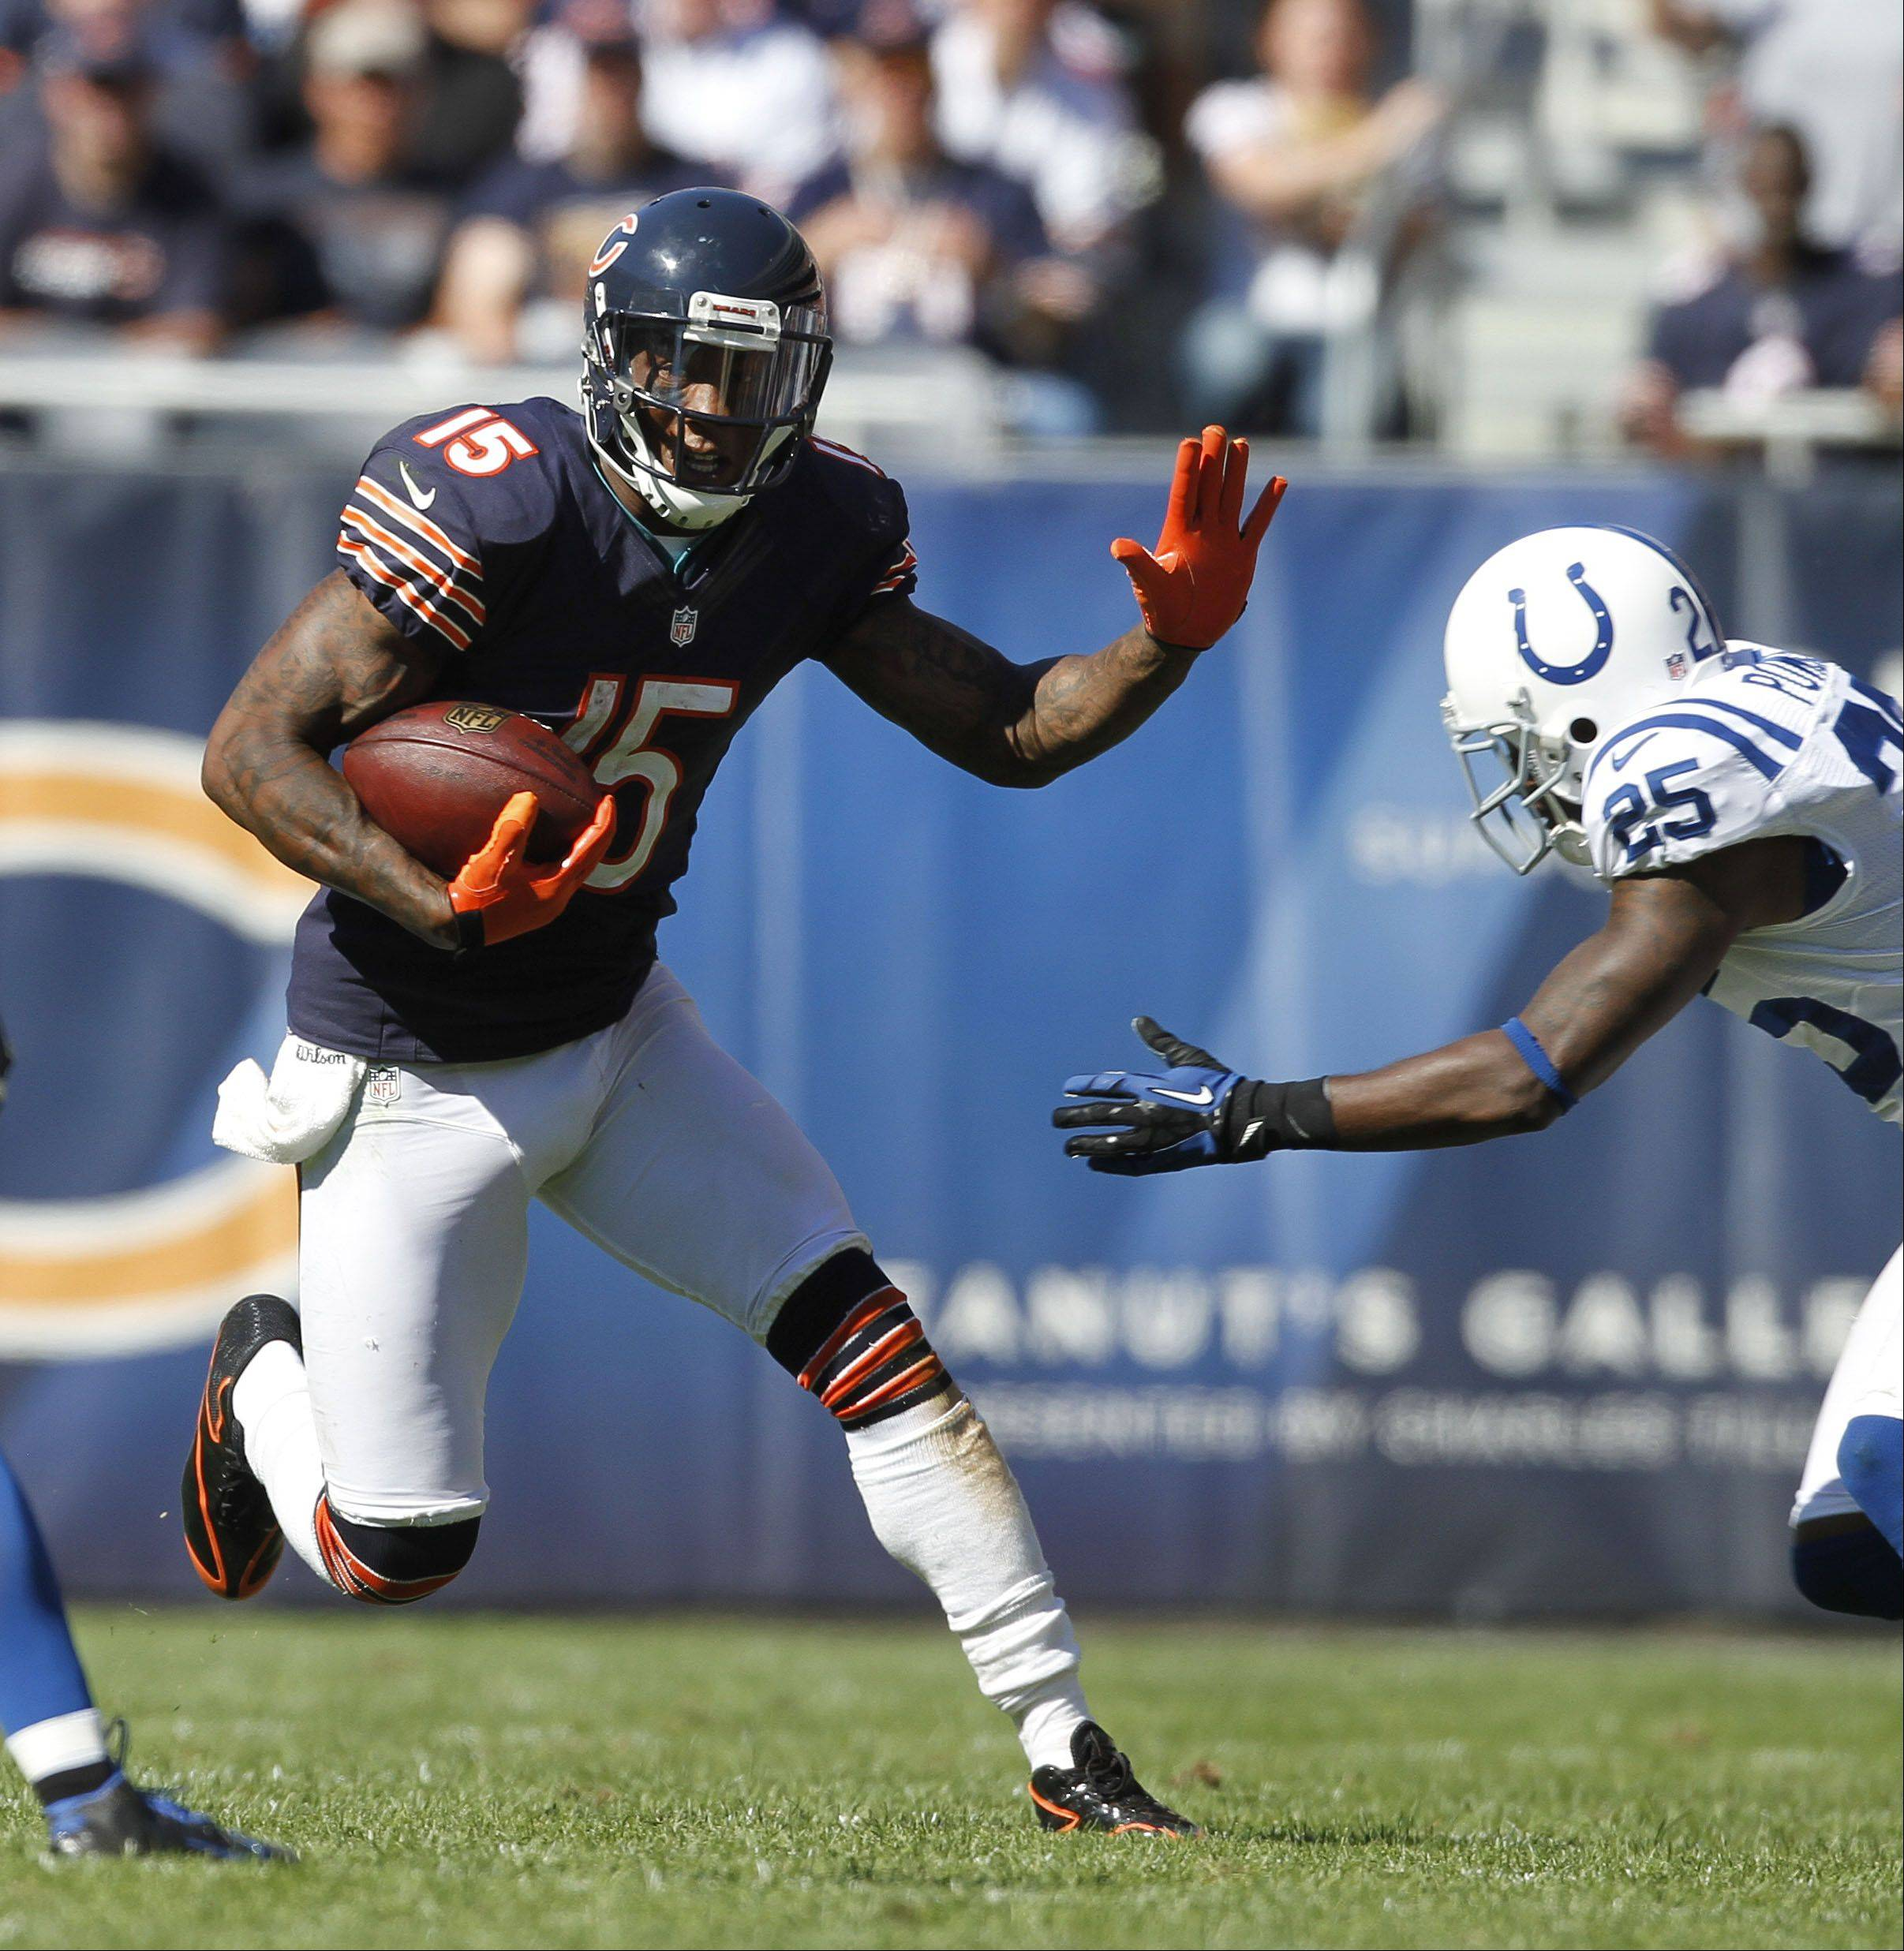 Brandon Marshall, left, runs past Indianapolis Colts cornerback Jerraud Powers during the Bears season opener against the Indianapolis Colts Sunday at Soldier Field in Chicago. The Bears won 41-21.